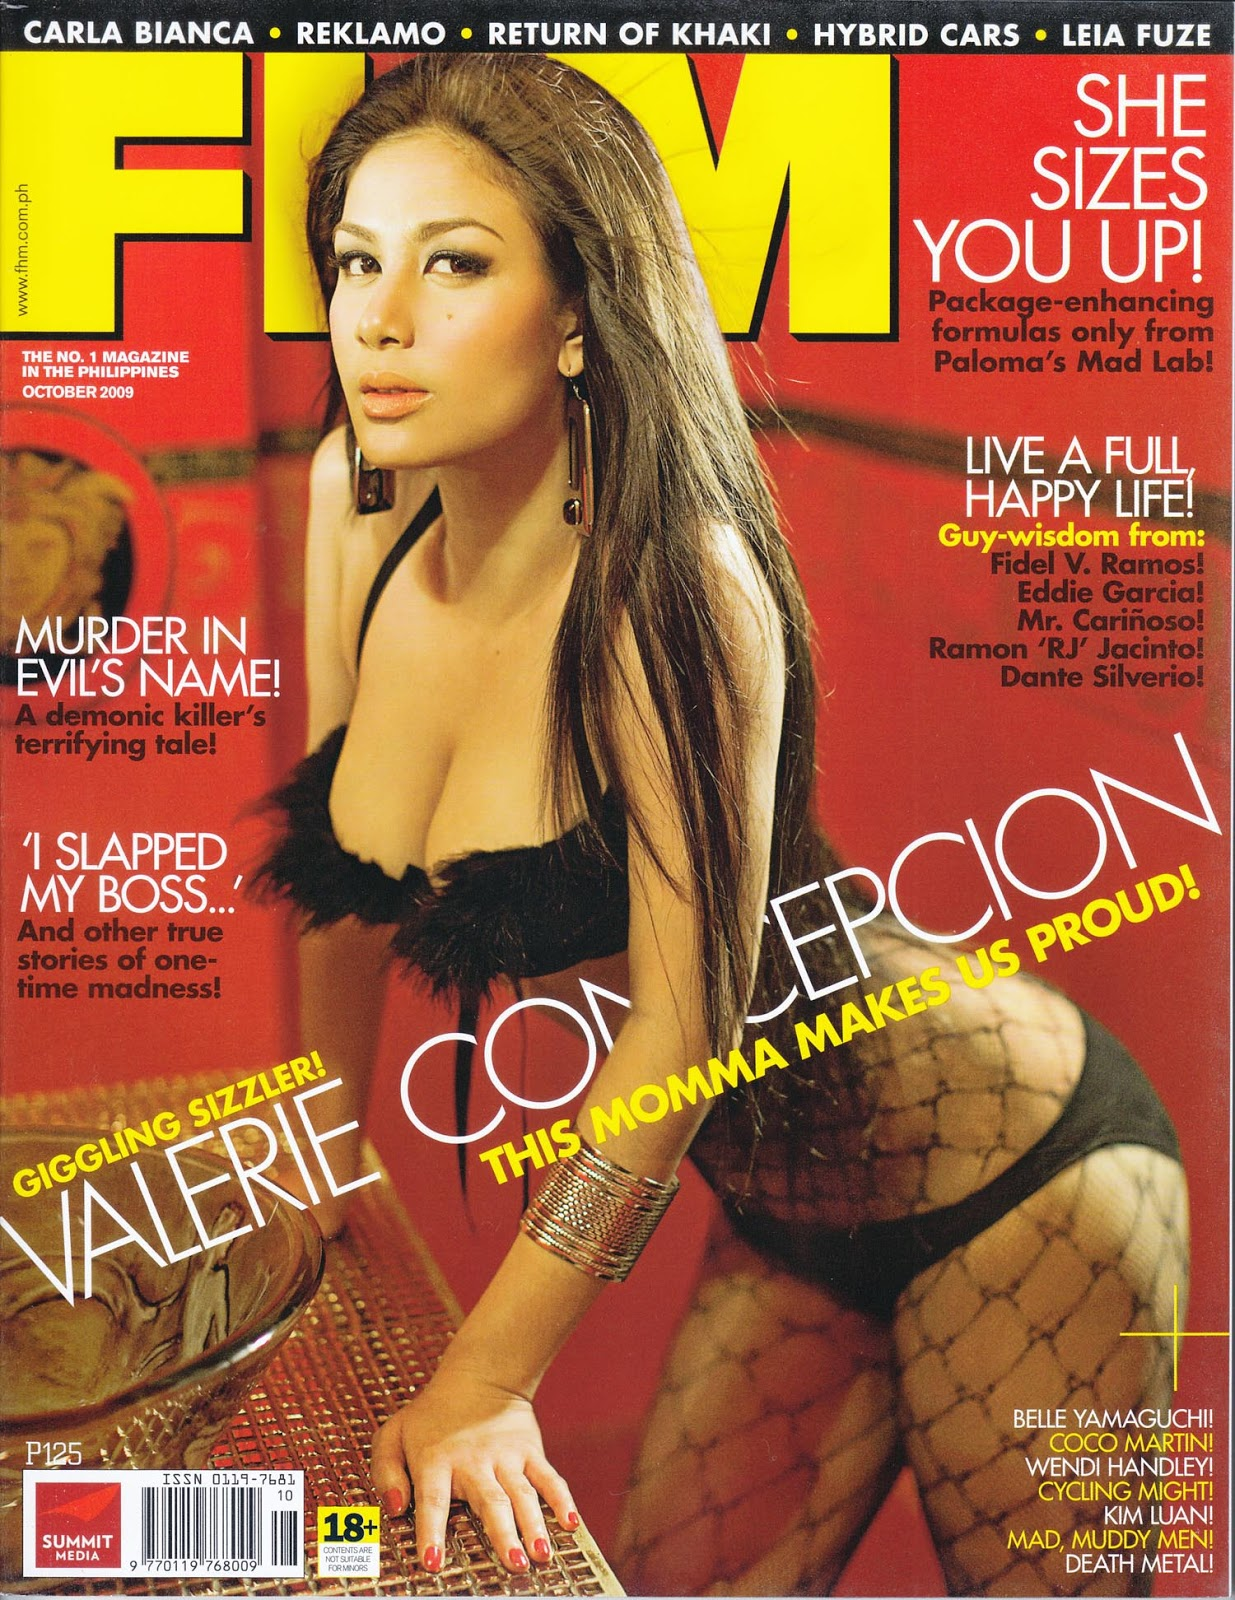 valerie concepcion sexy fhm bikini photos 05